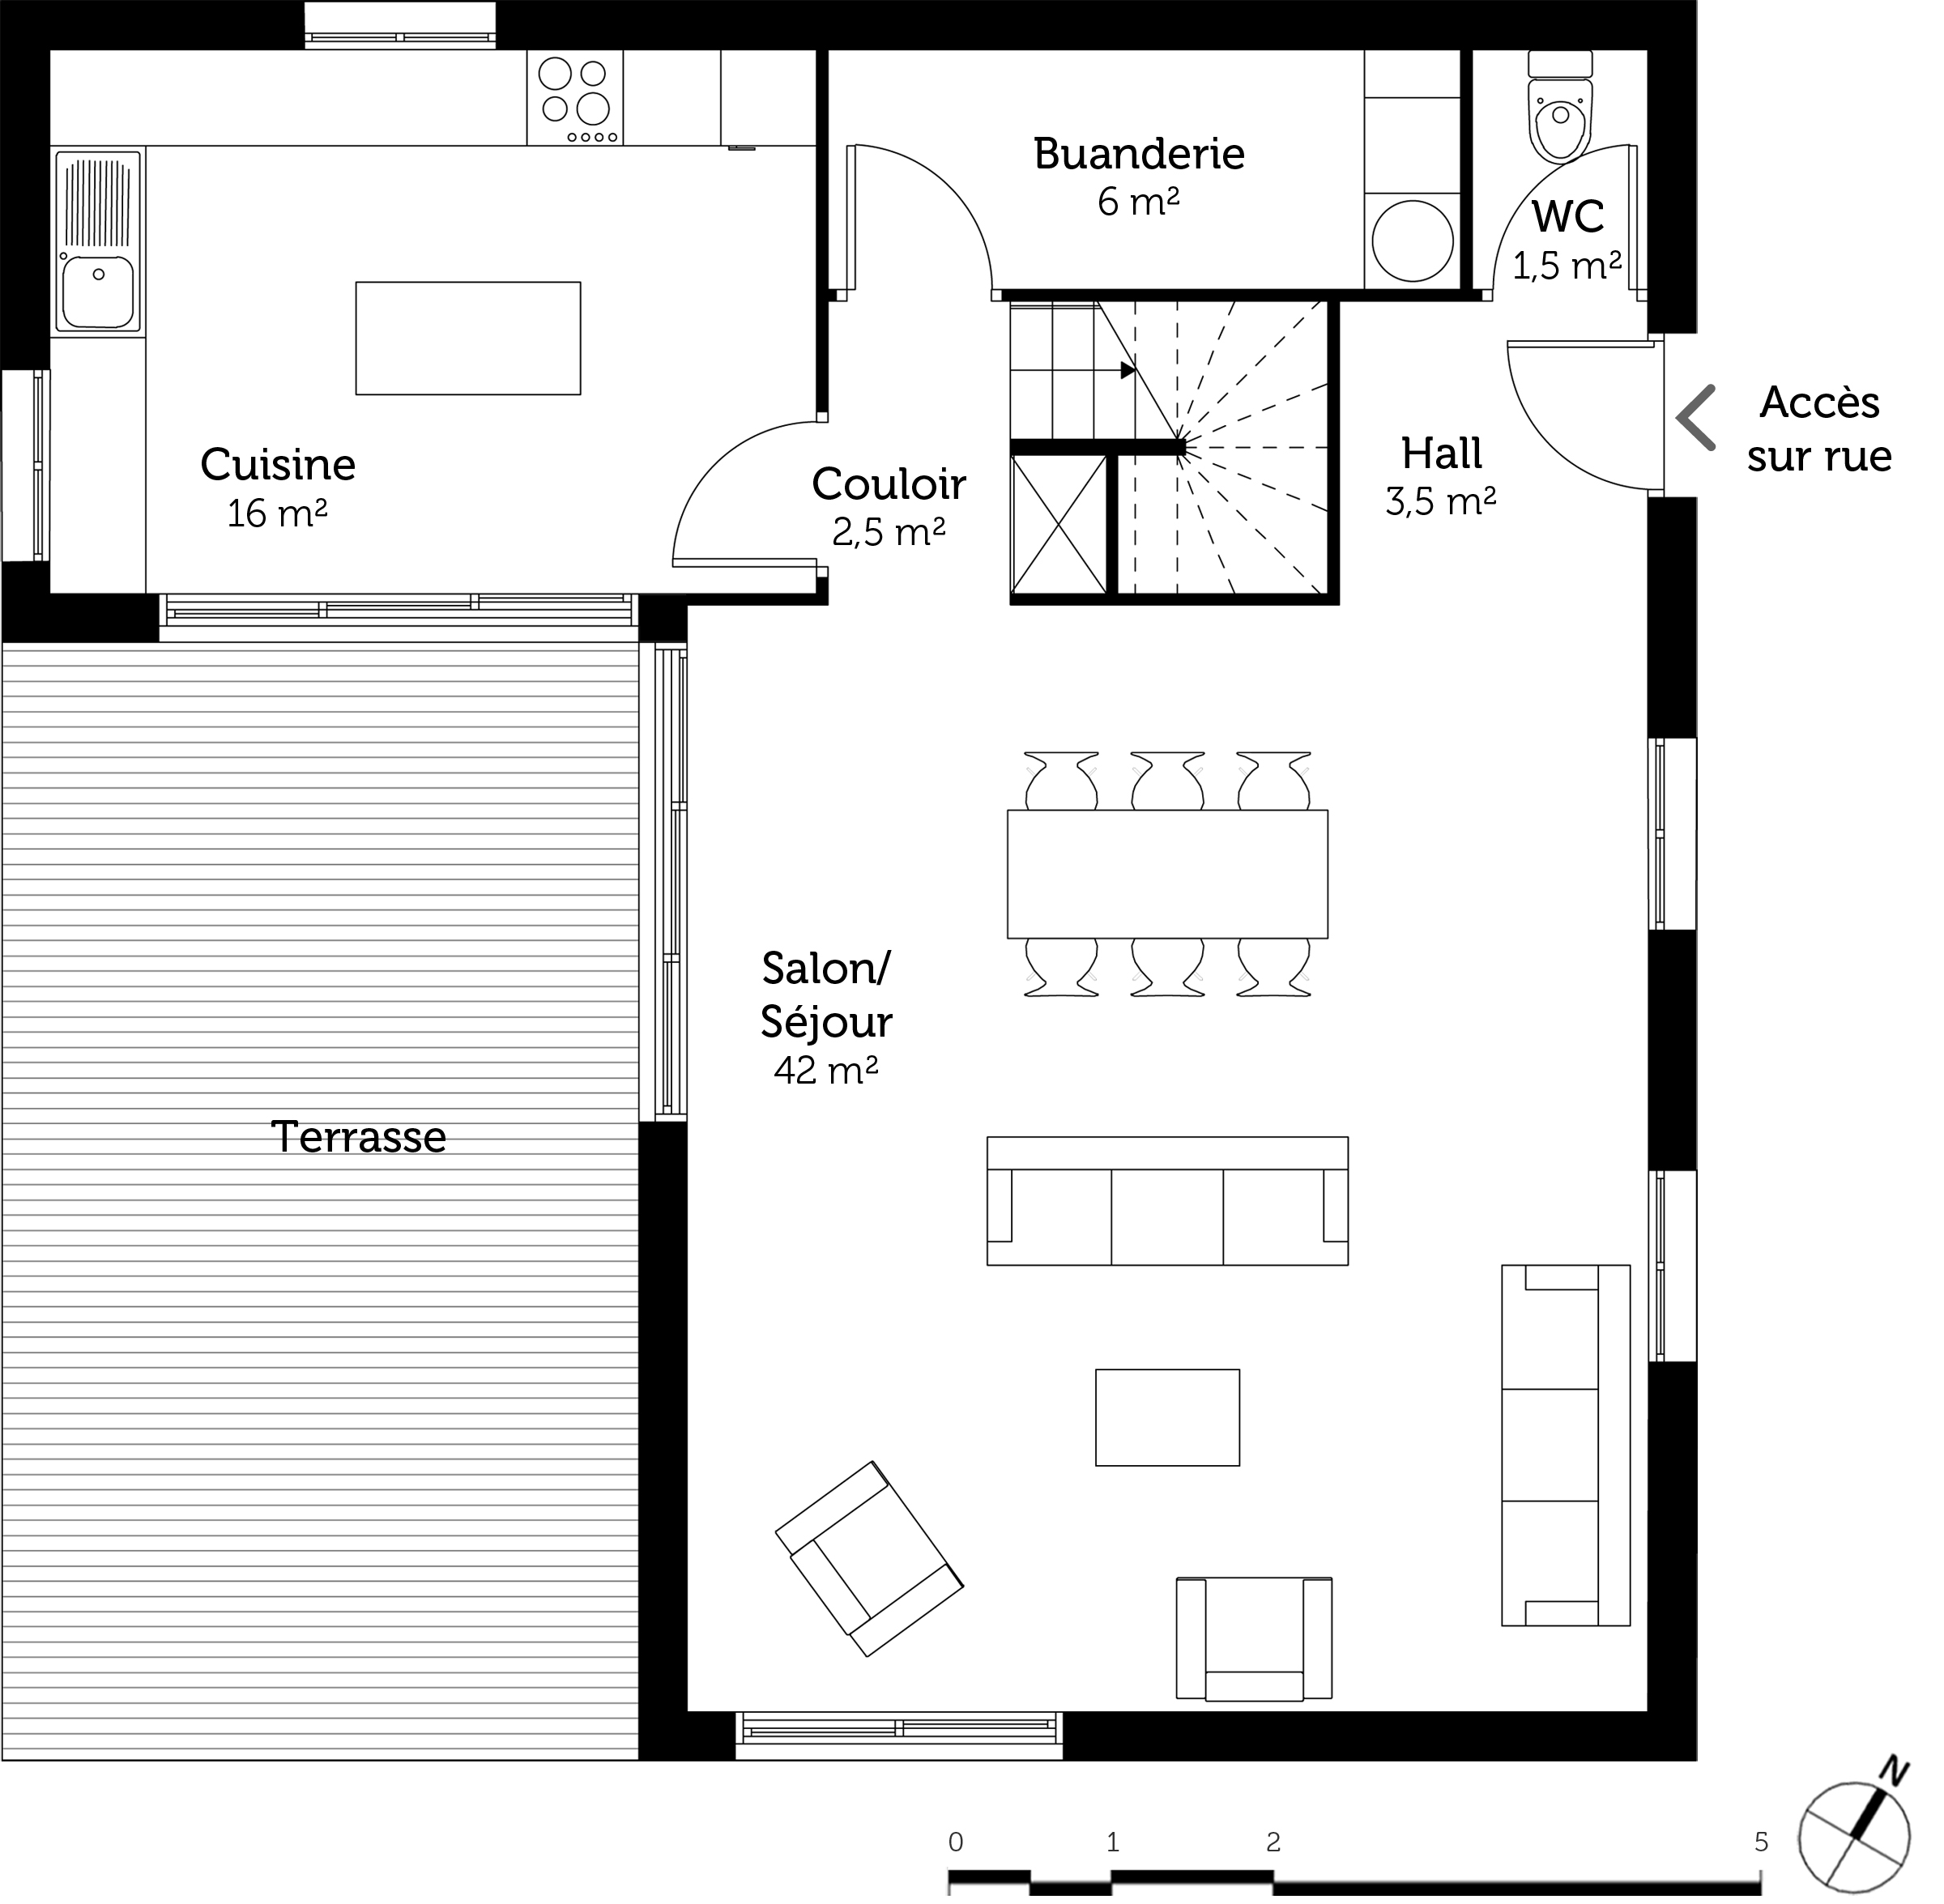 Plan maison 3 chambres et dressing ooreka - Amenagement buanderie photos plans ...